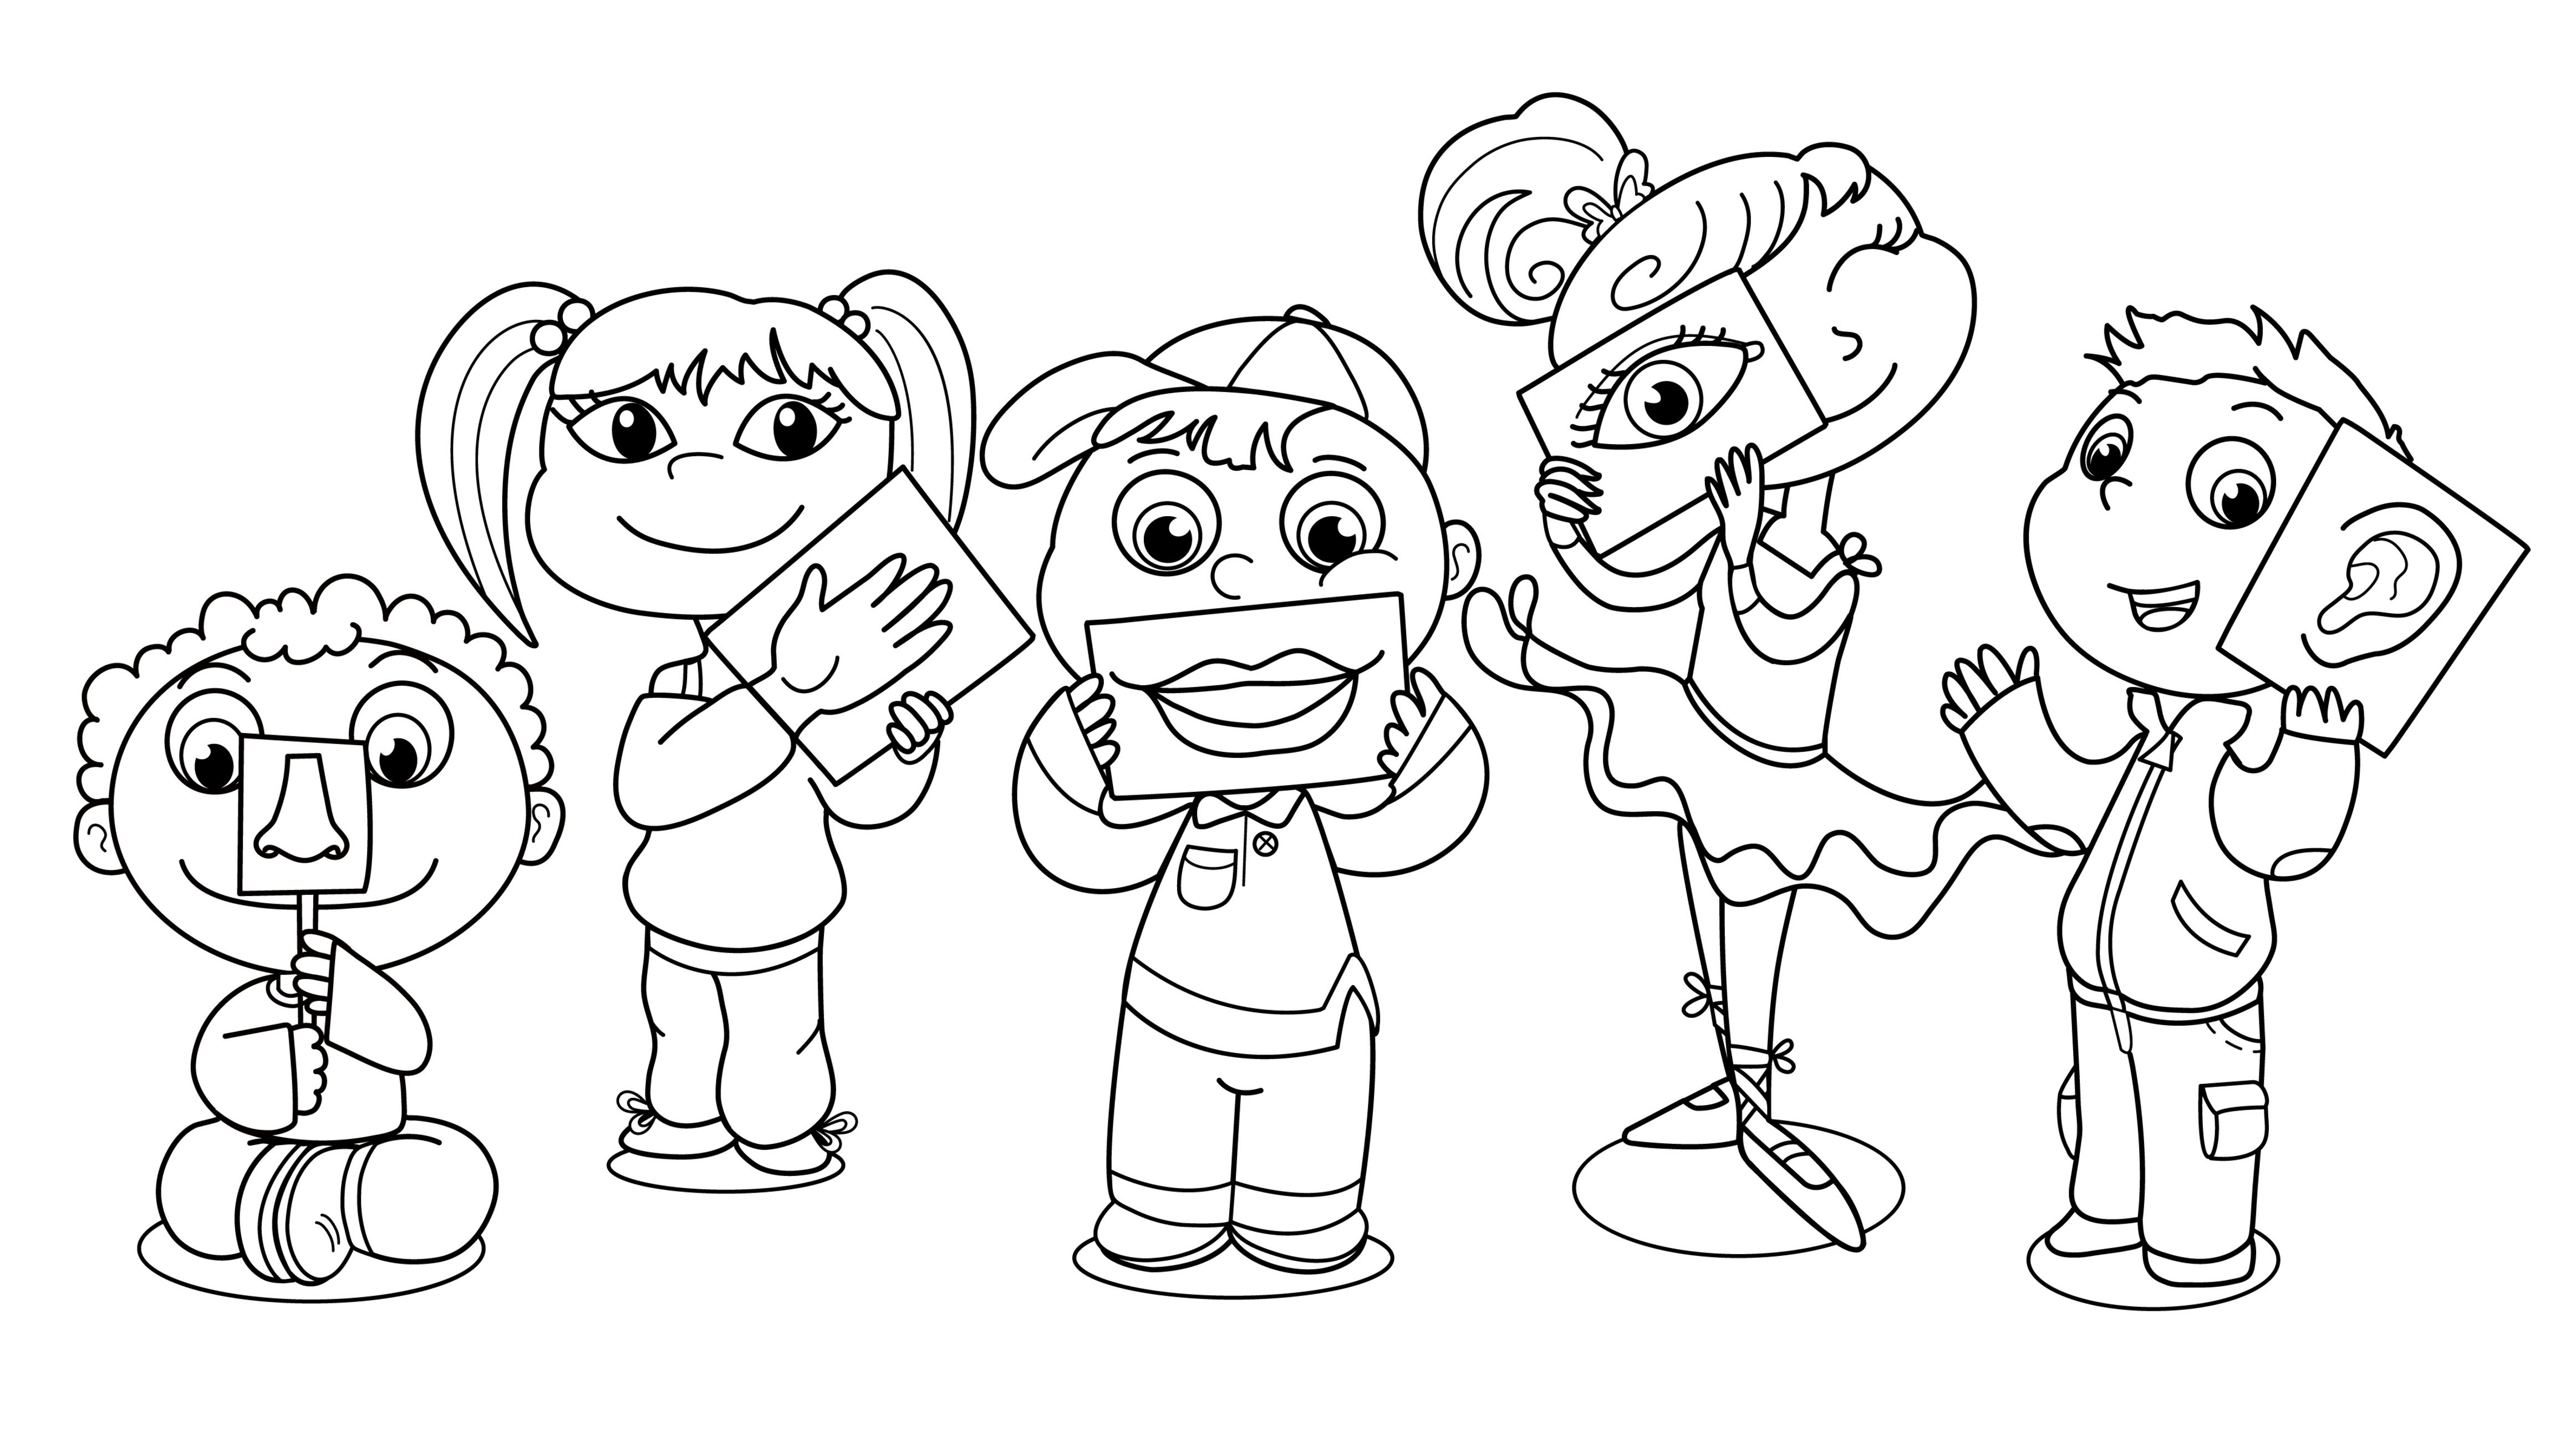 Fives Senses Coloring Page